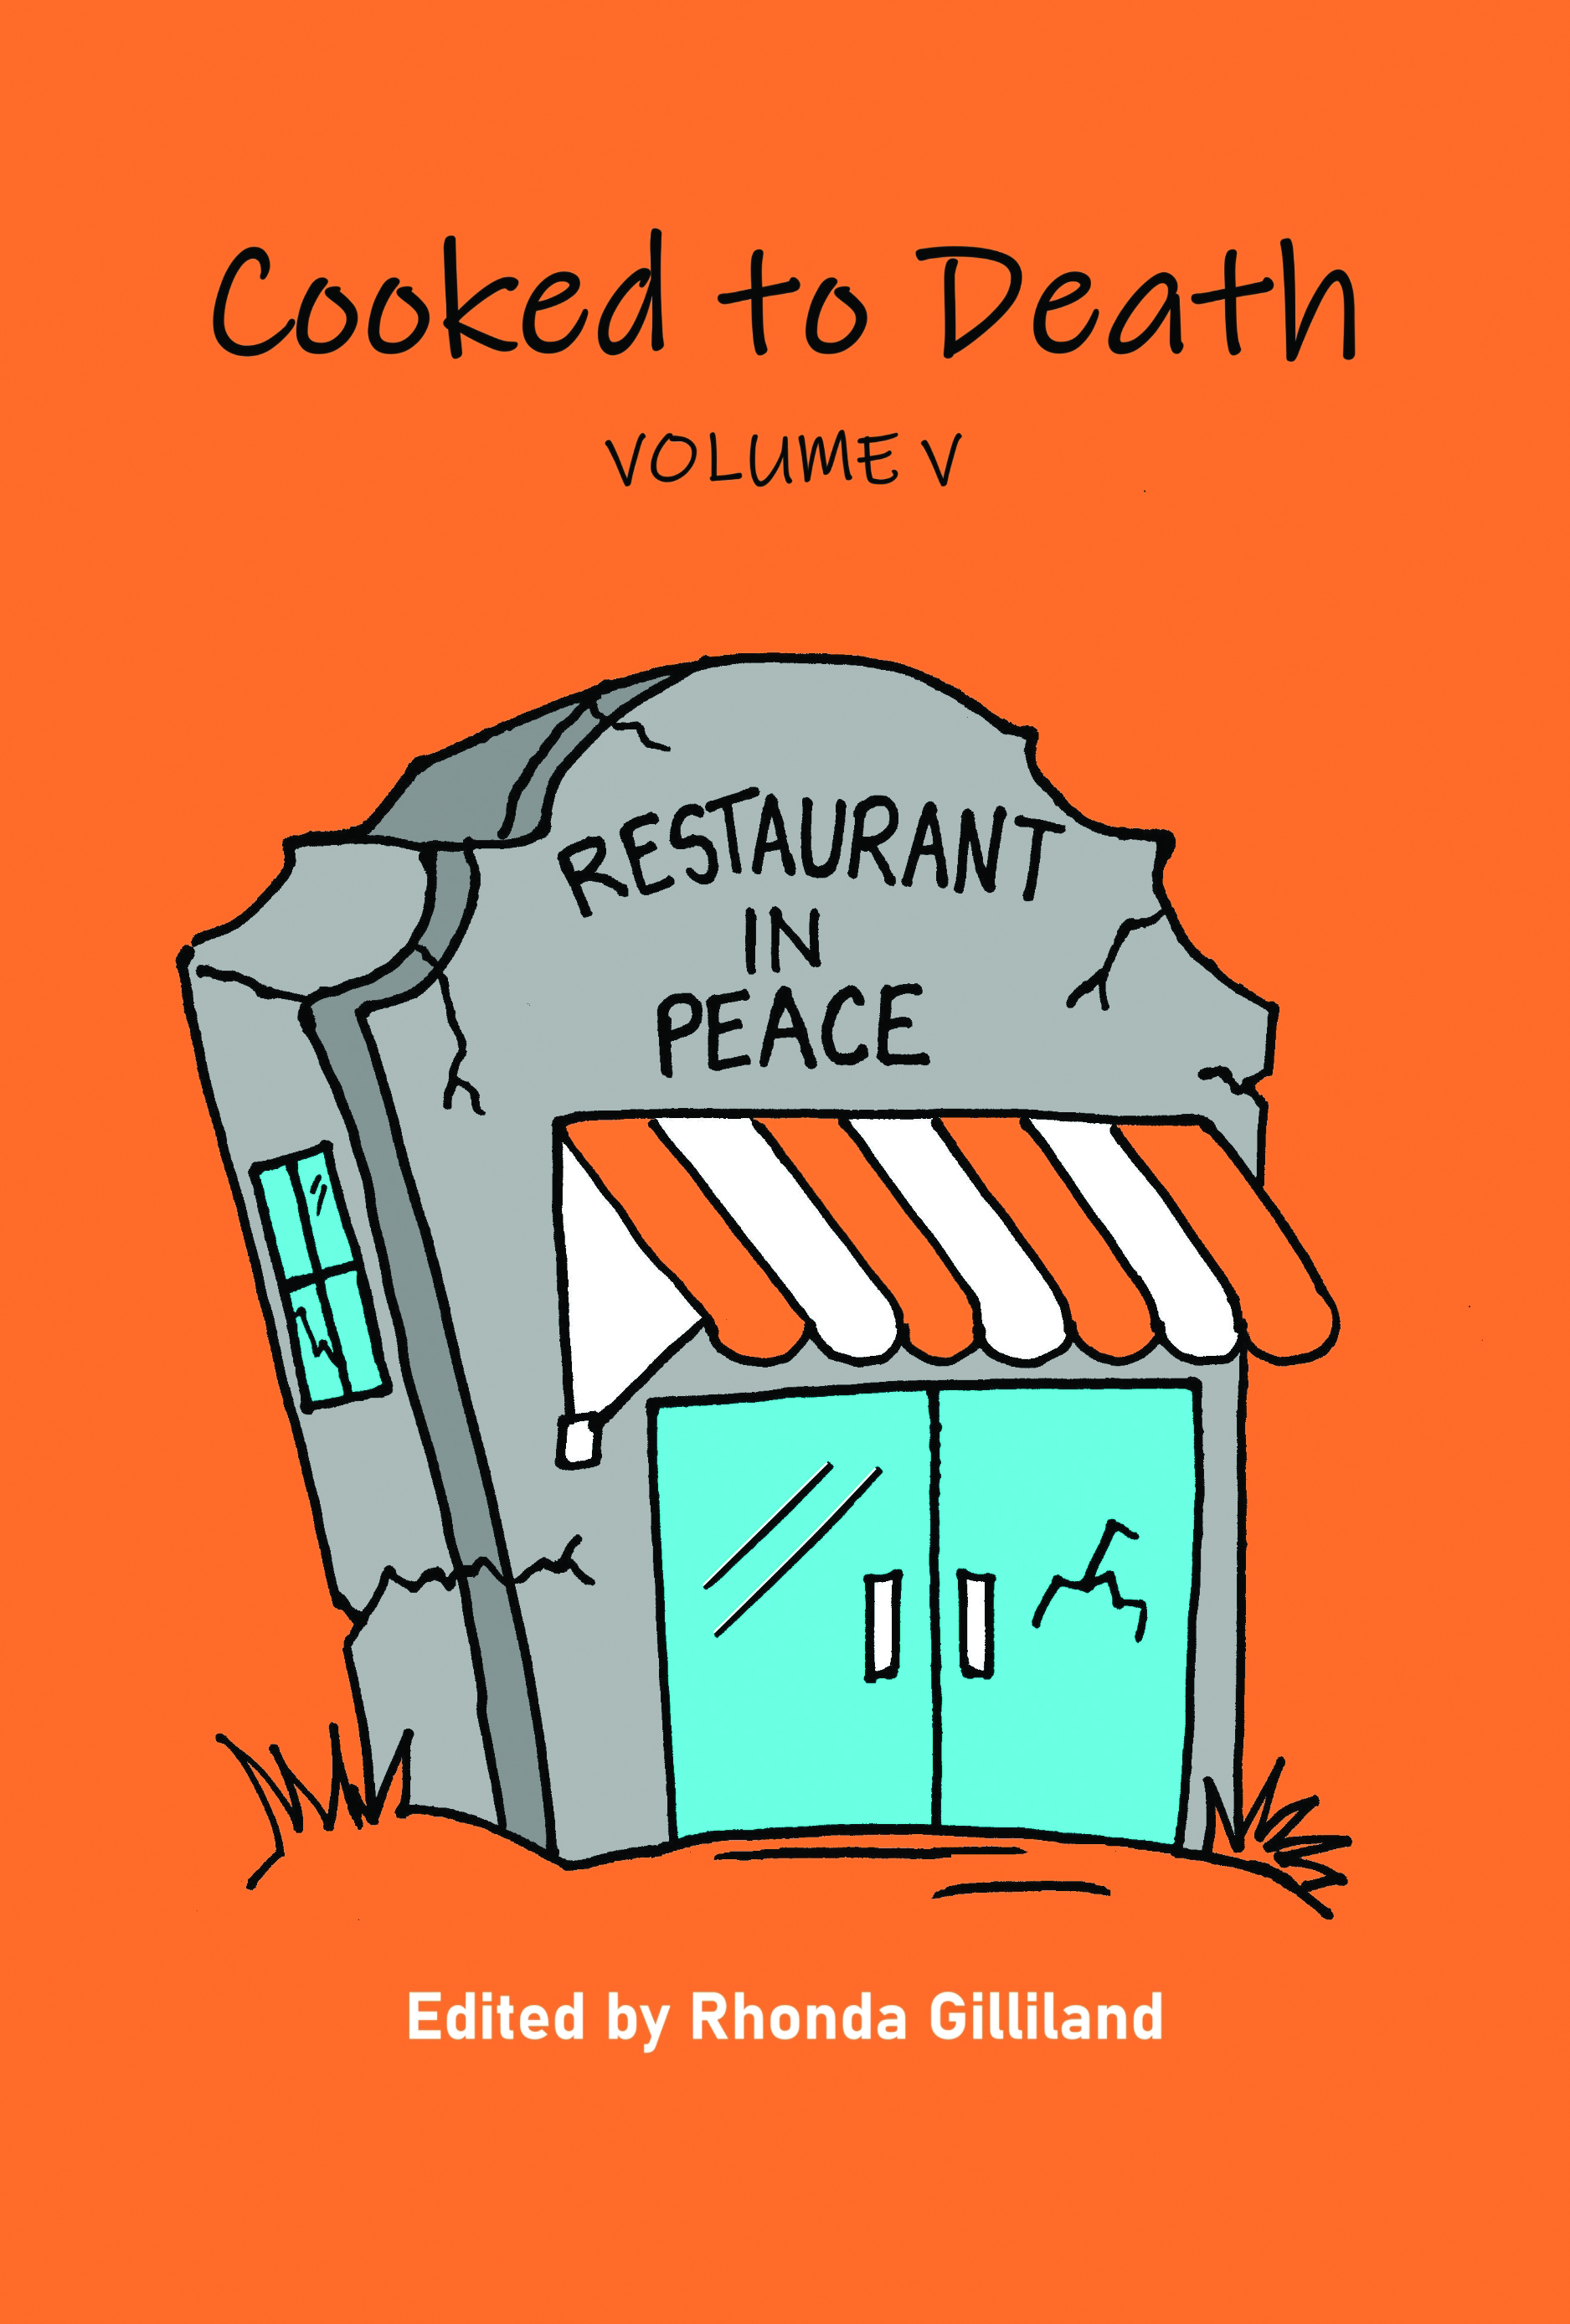 Cooked to Death, Vol. V: Restaurant in Peace